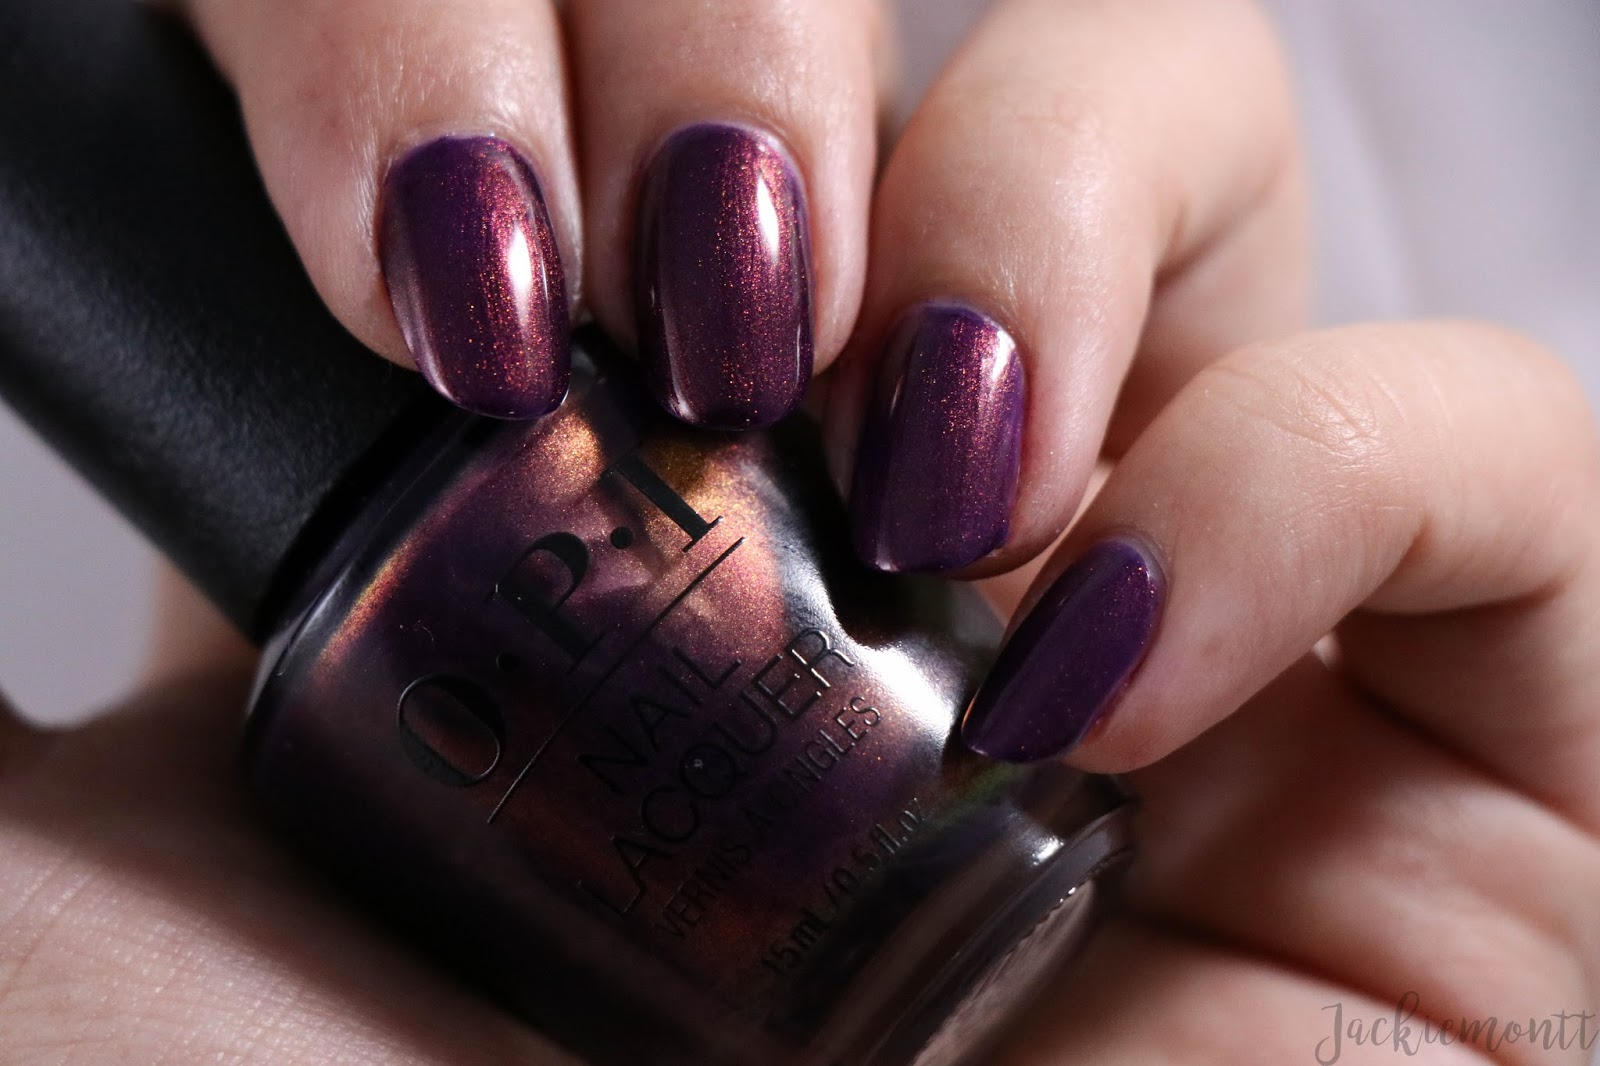 OPI | Love OPI, XOXO (Holiday 2017) Review & Swatches - JACKIEMONTT